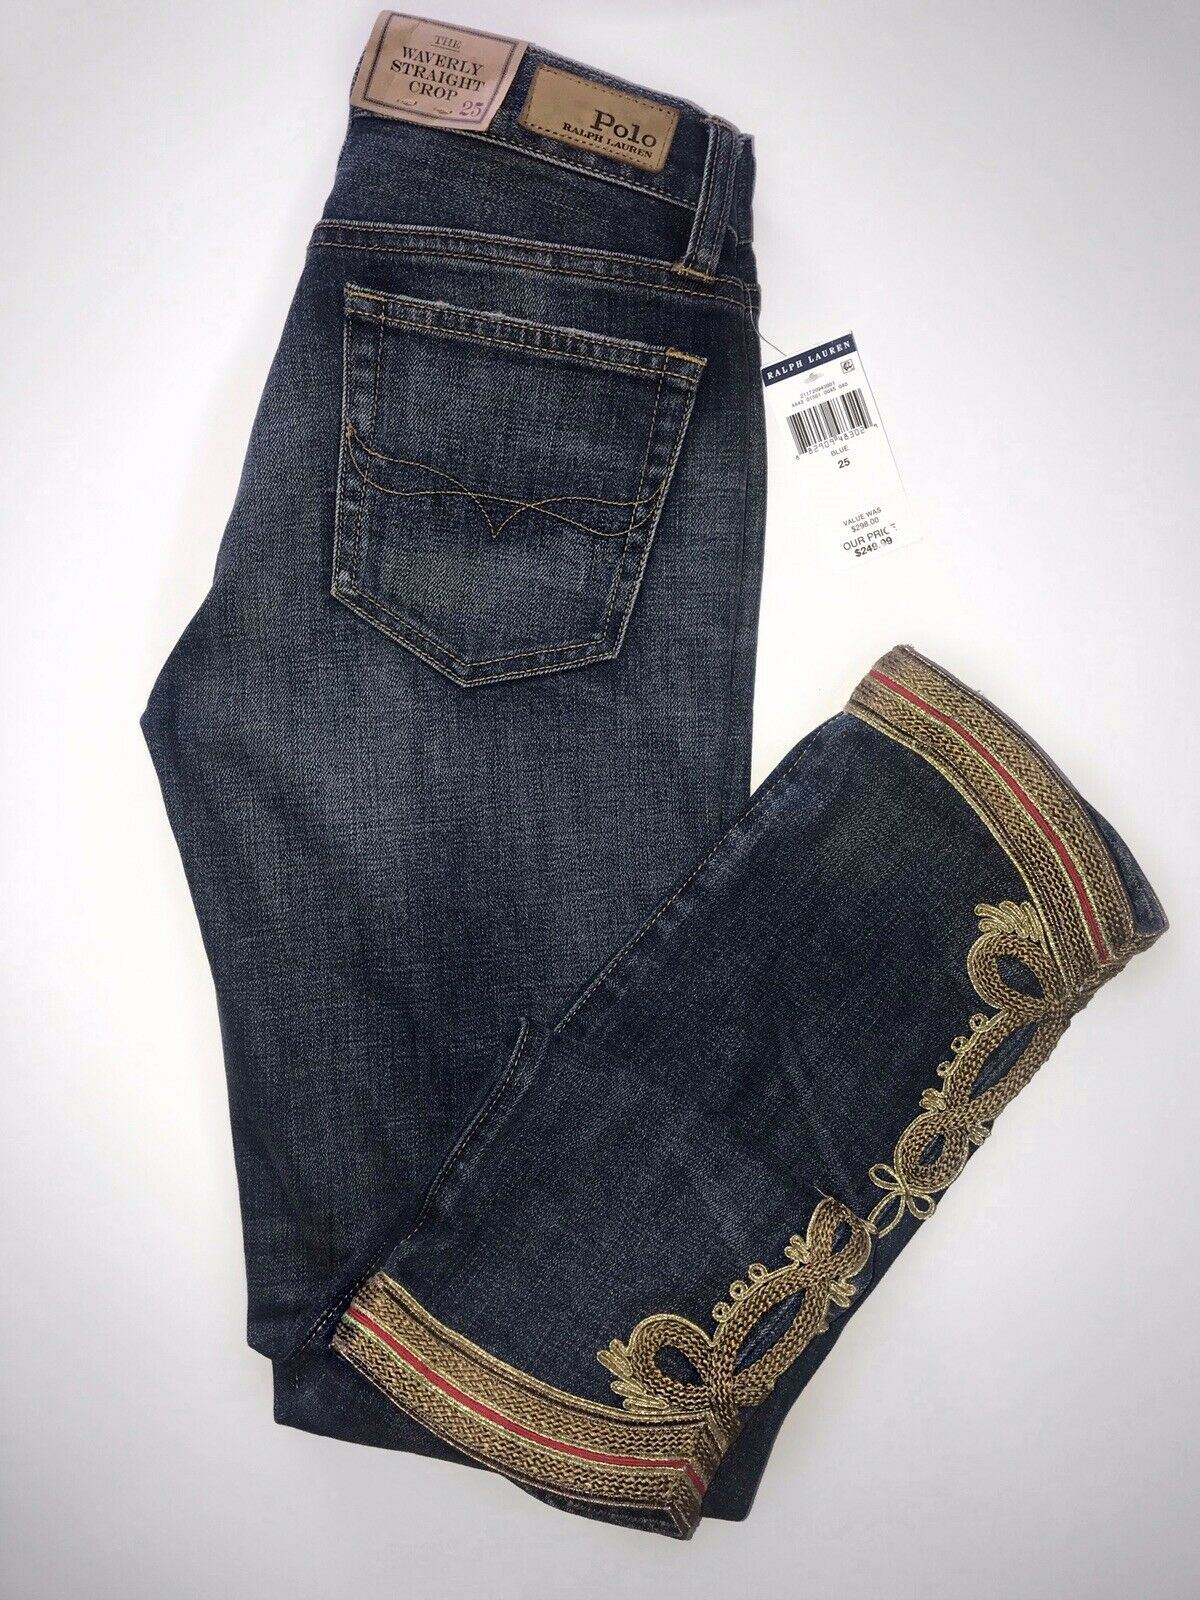 NWT $298 Polo Ralph Lauren Waverly Straight Crop Embroidered Blue Jeans Size 25